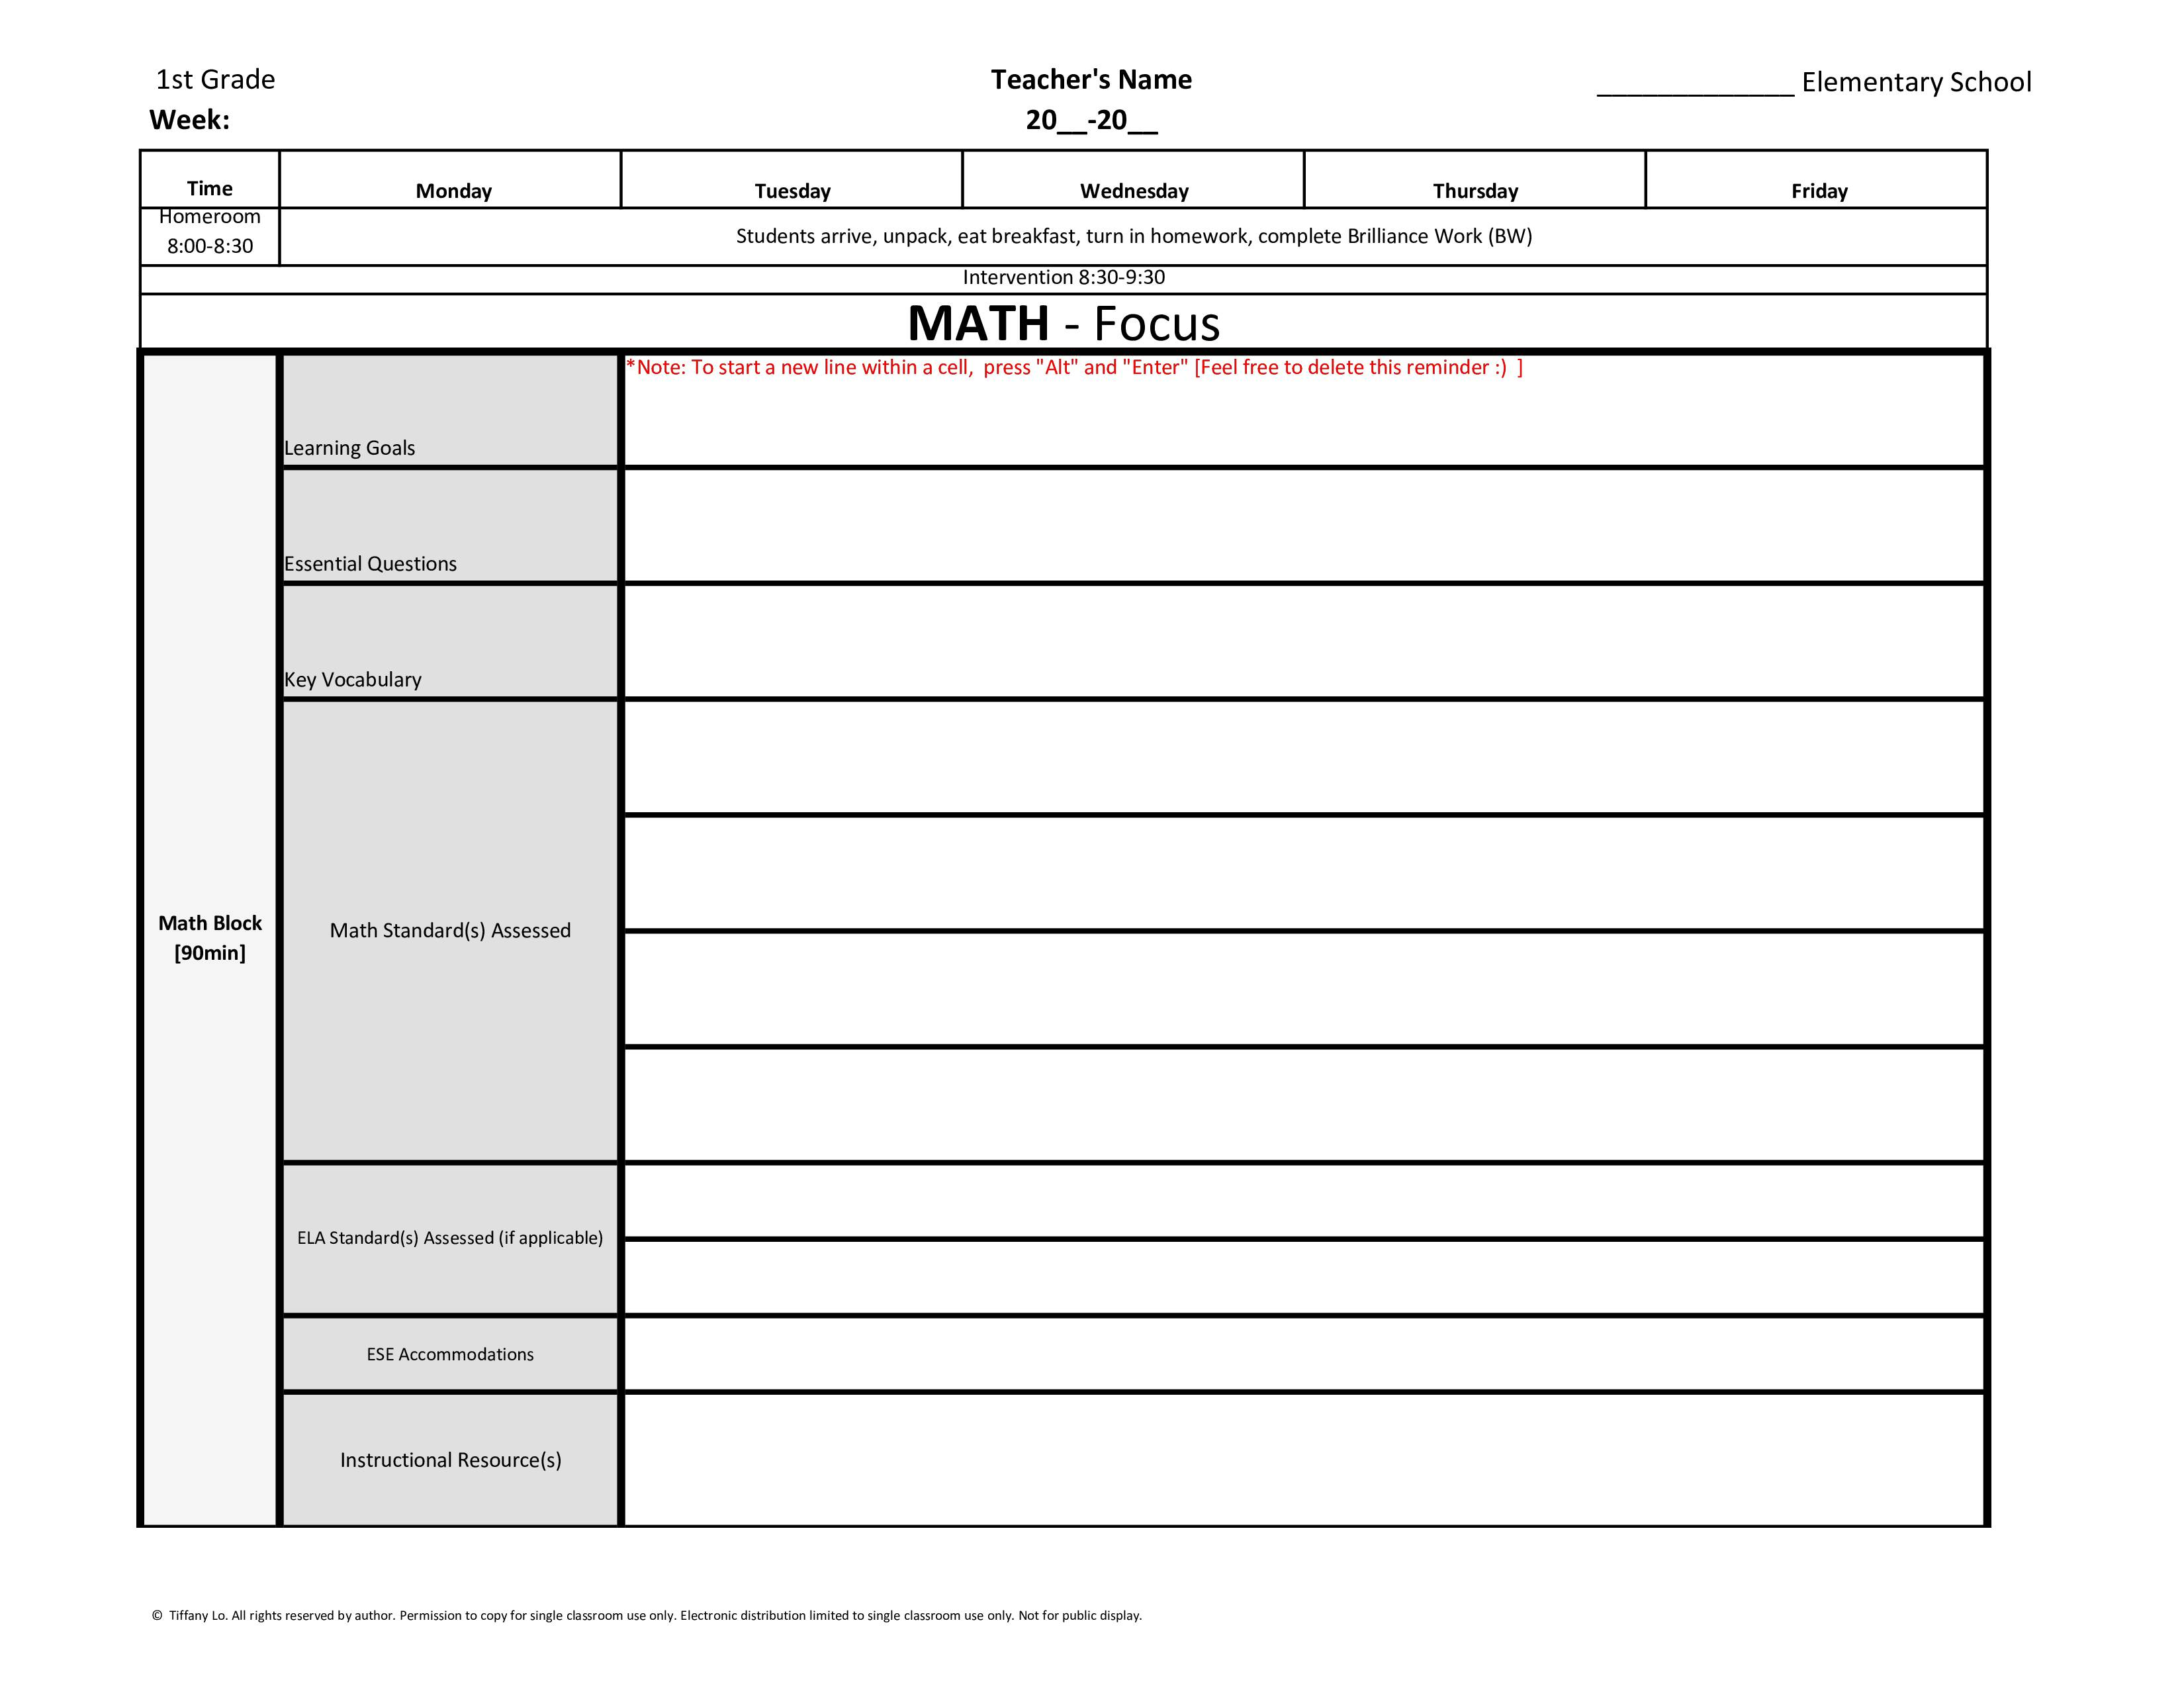 1st First Grade Common Core Weekly Lesson Plan Template W Drop Down